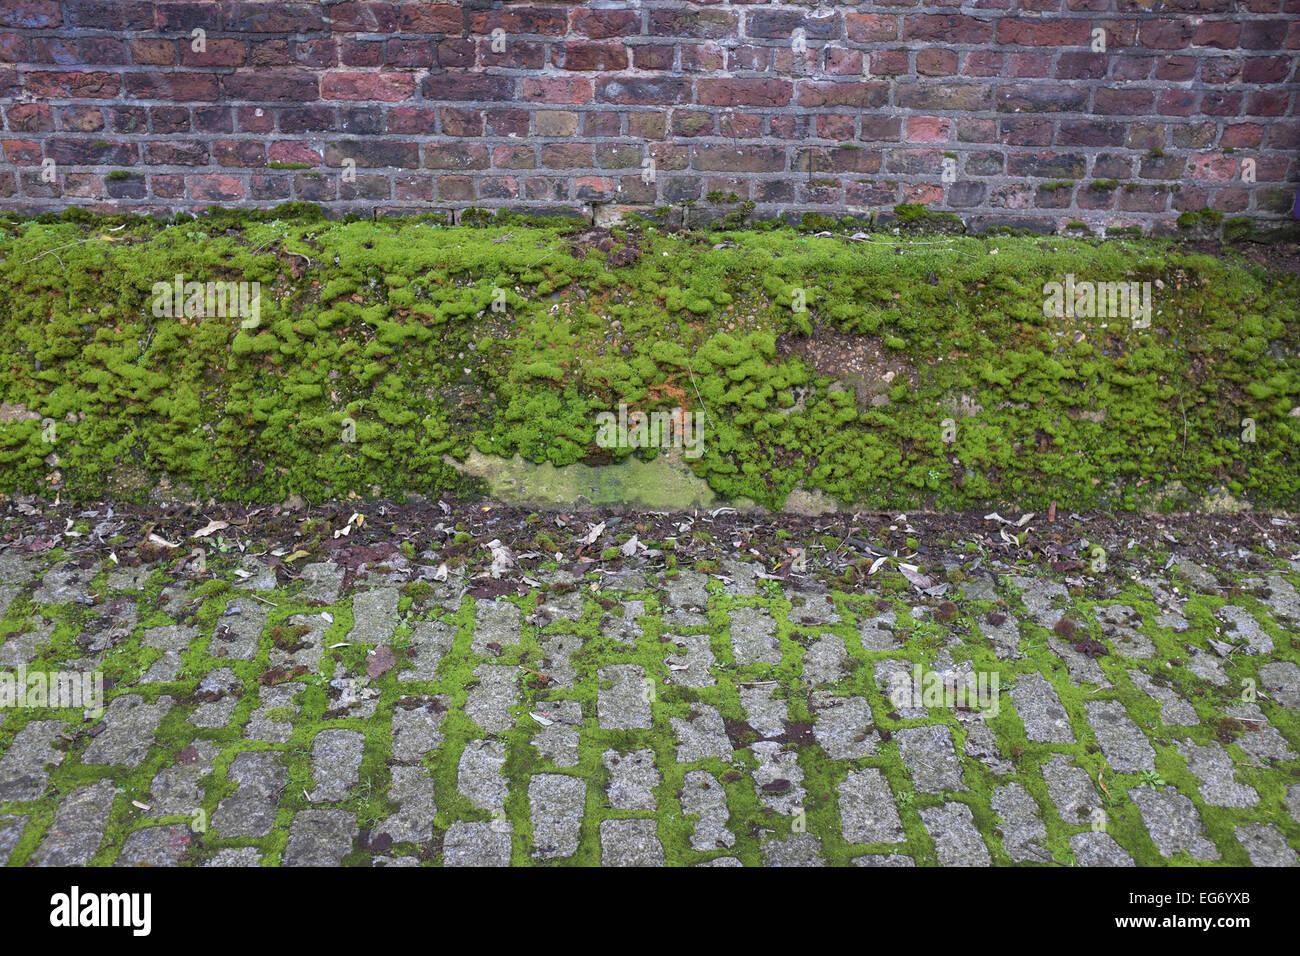 Build up of healthy looking green moss on an old wall. London, UK. Mosses are small flowerless plants that usually - Stock Image